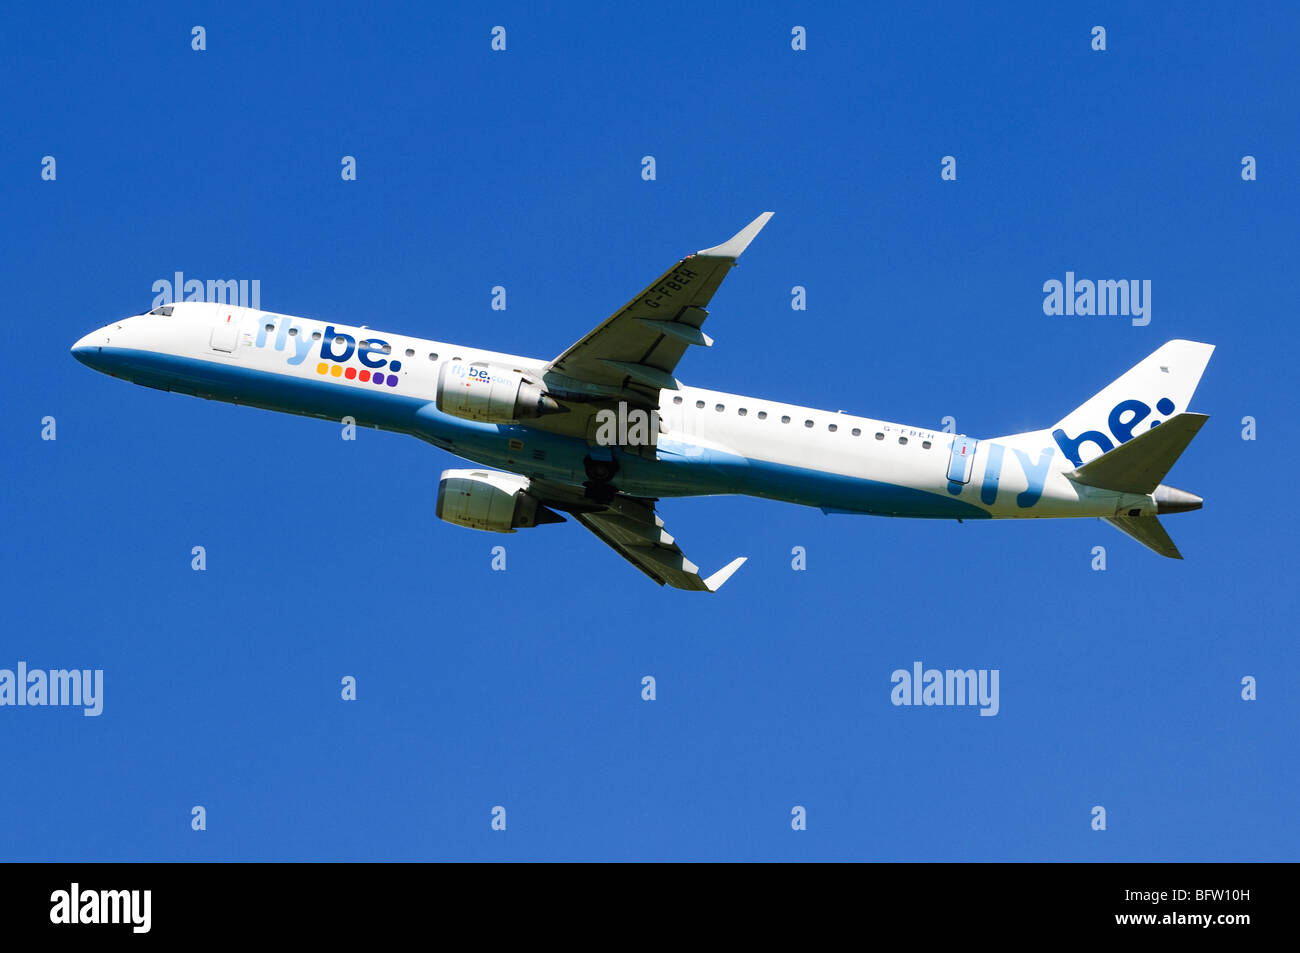 Embraer ERJ-190 operated by Flybe climbing out from take off at Birmingham Airport, UK. - Stock Image